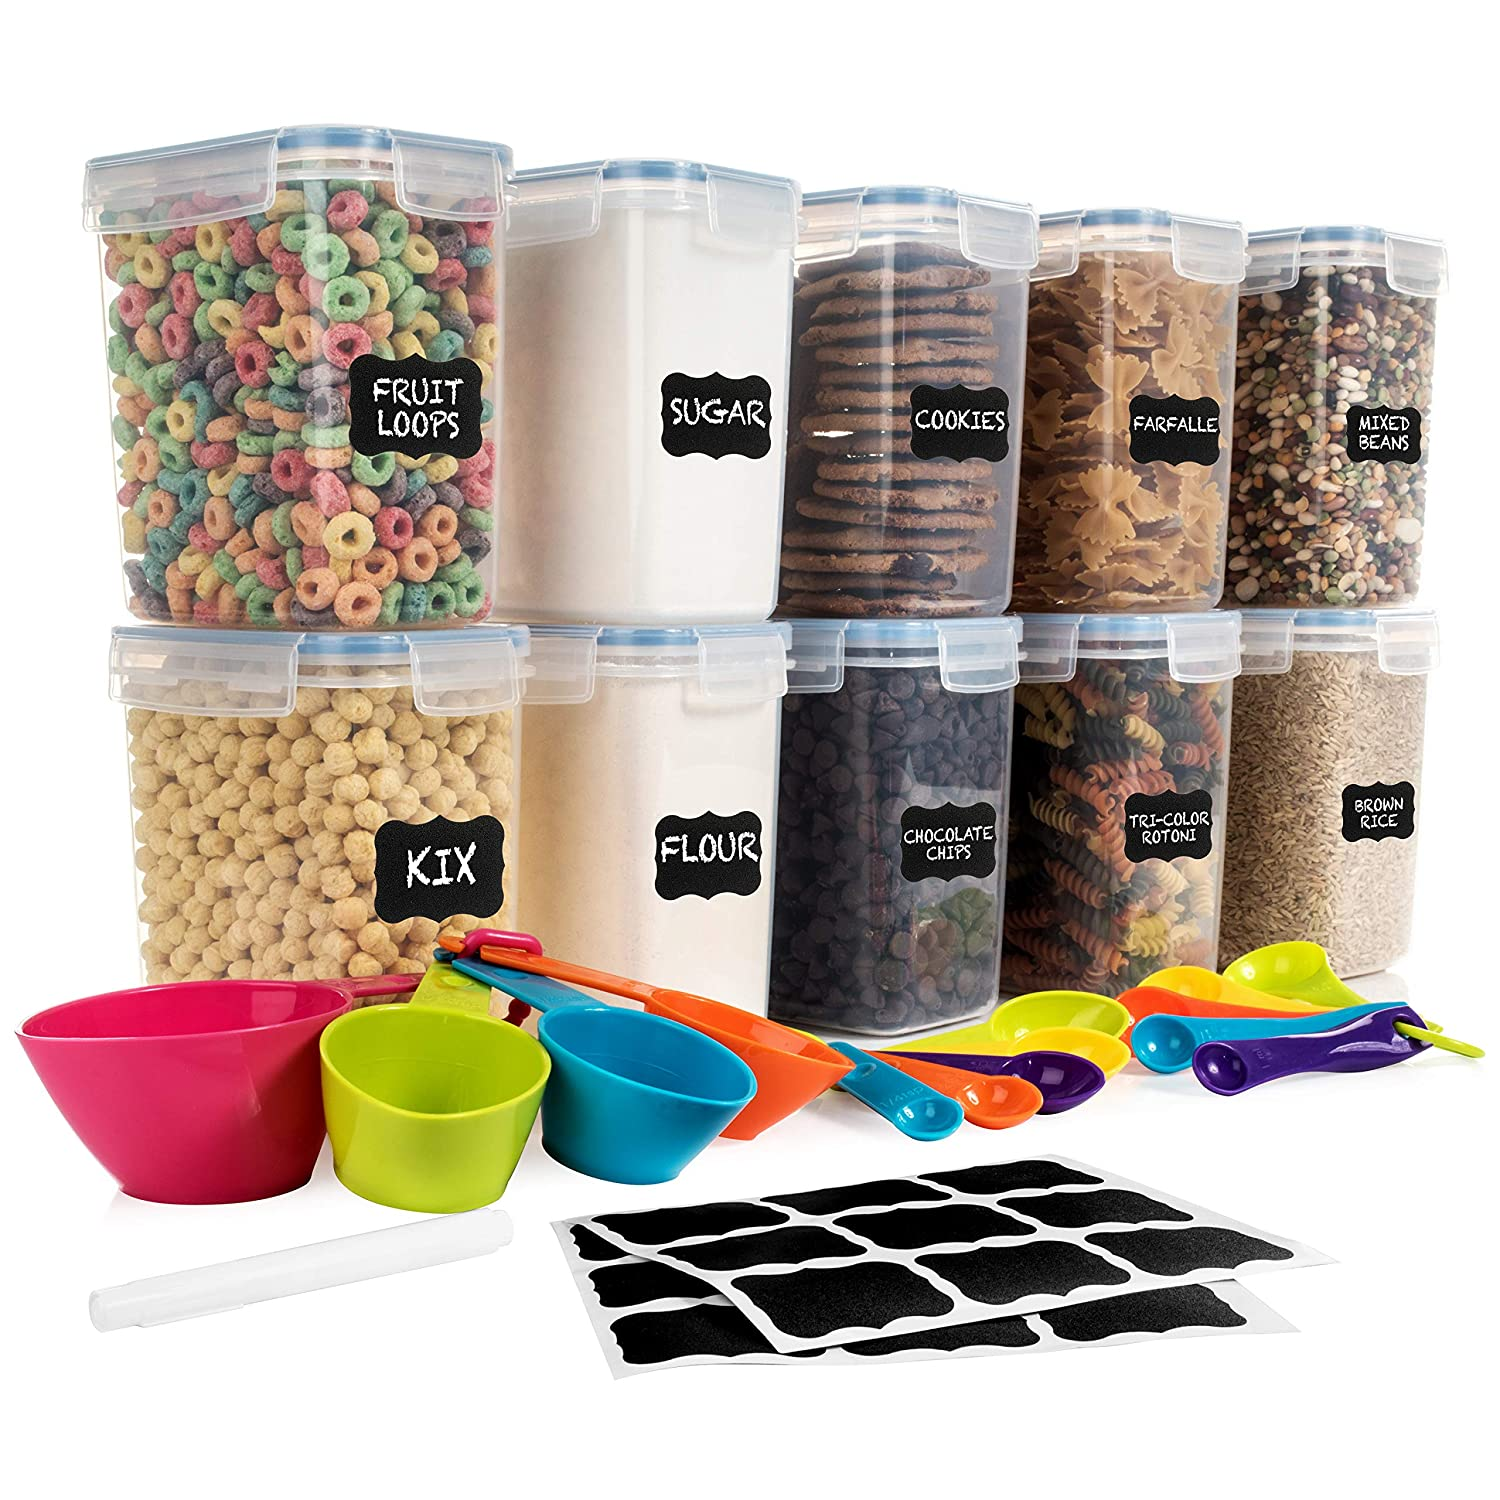 SPACE SAVER Food Storage Airtight Pantry Containers [Set of 10] 1.6L /54oz + 14 Measuring Cup/Spoons + 18 FREE labels & Marker - Ideal for Sugar, Flour, Baking Supplies - Clear Plastic - Leakproof